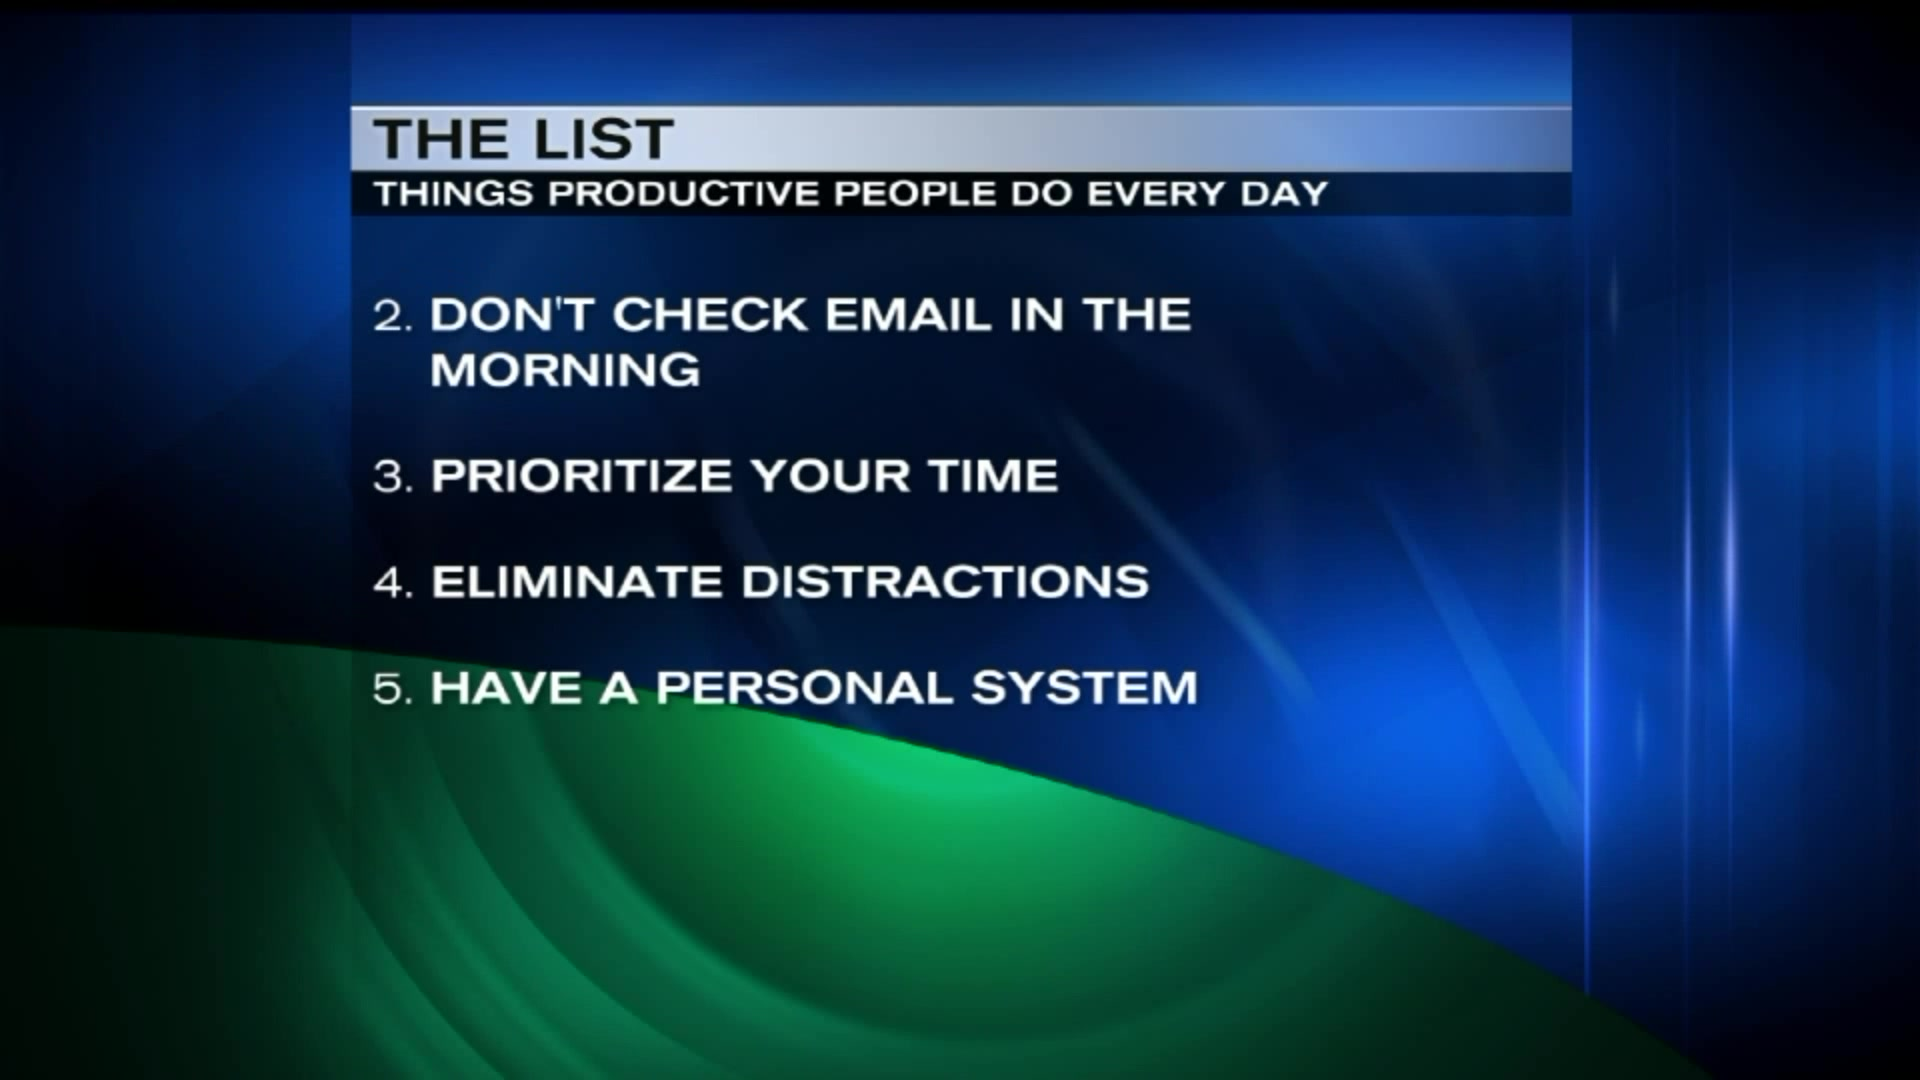 Top 5 Things That Highly Productive People Do Every Day